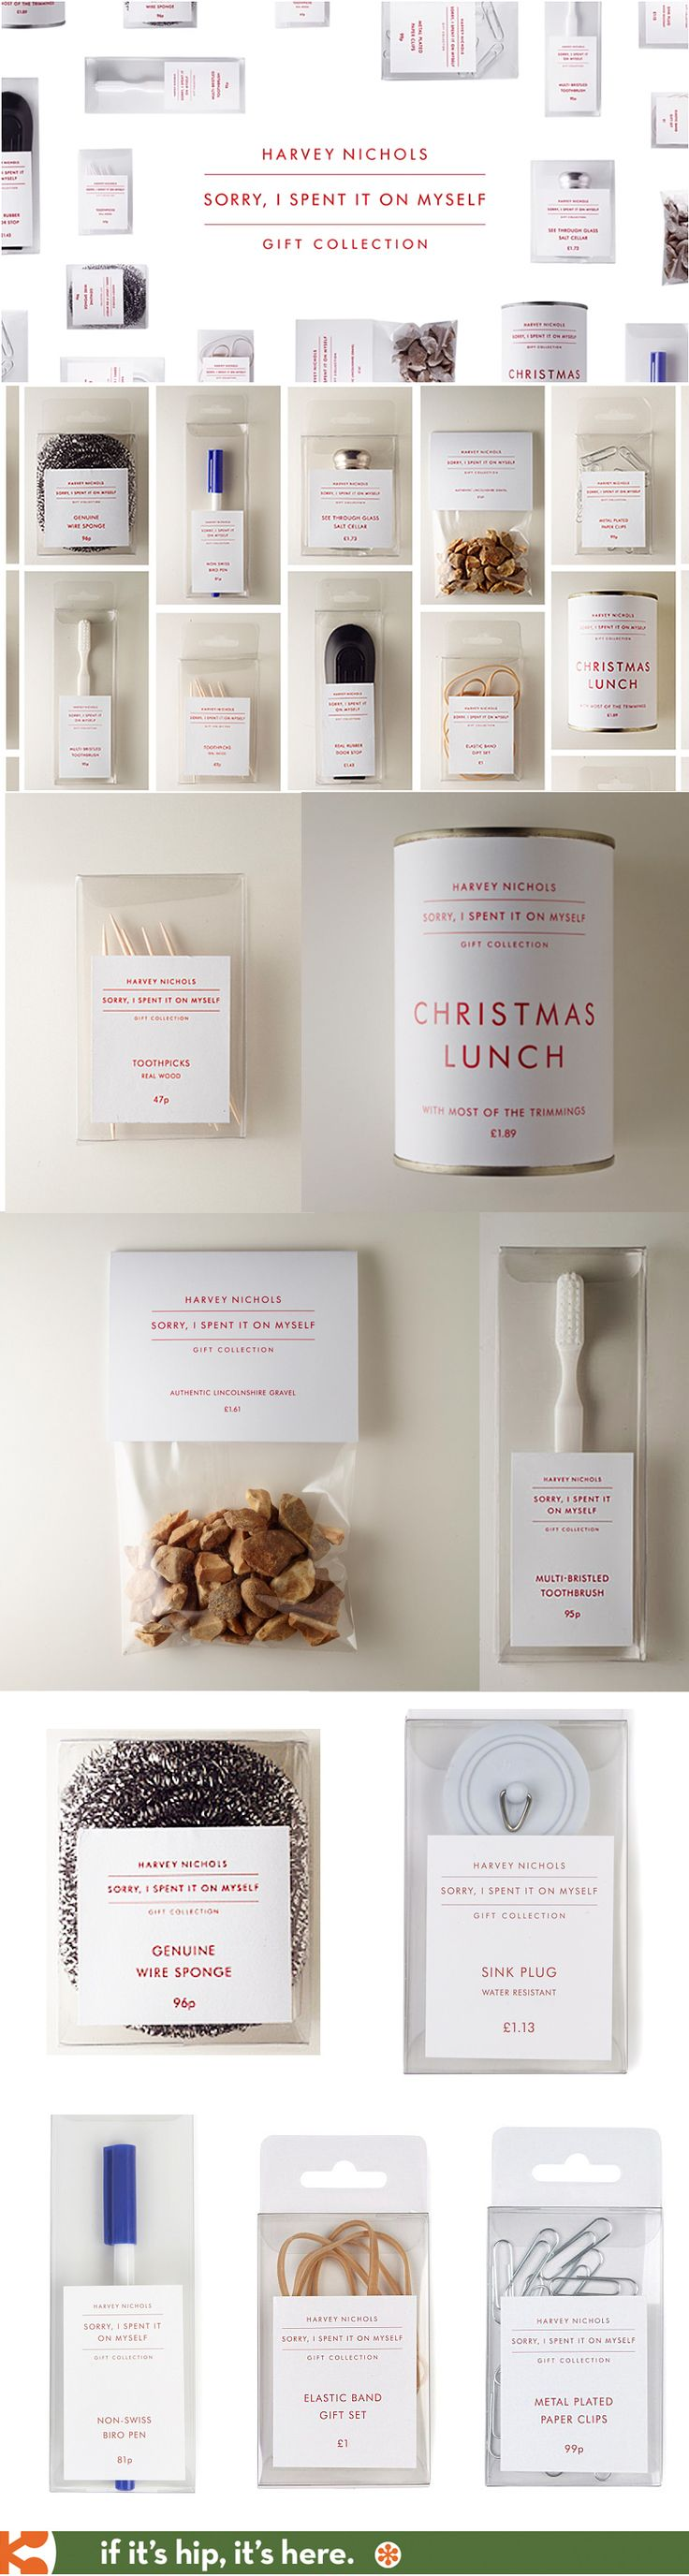 "@daptorquato did you see this #Christmas Packaged goods from Harvey Nichols' ""Sorry, I spent it on myself"" gift collection PD"